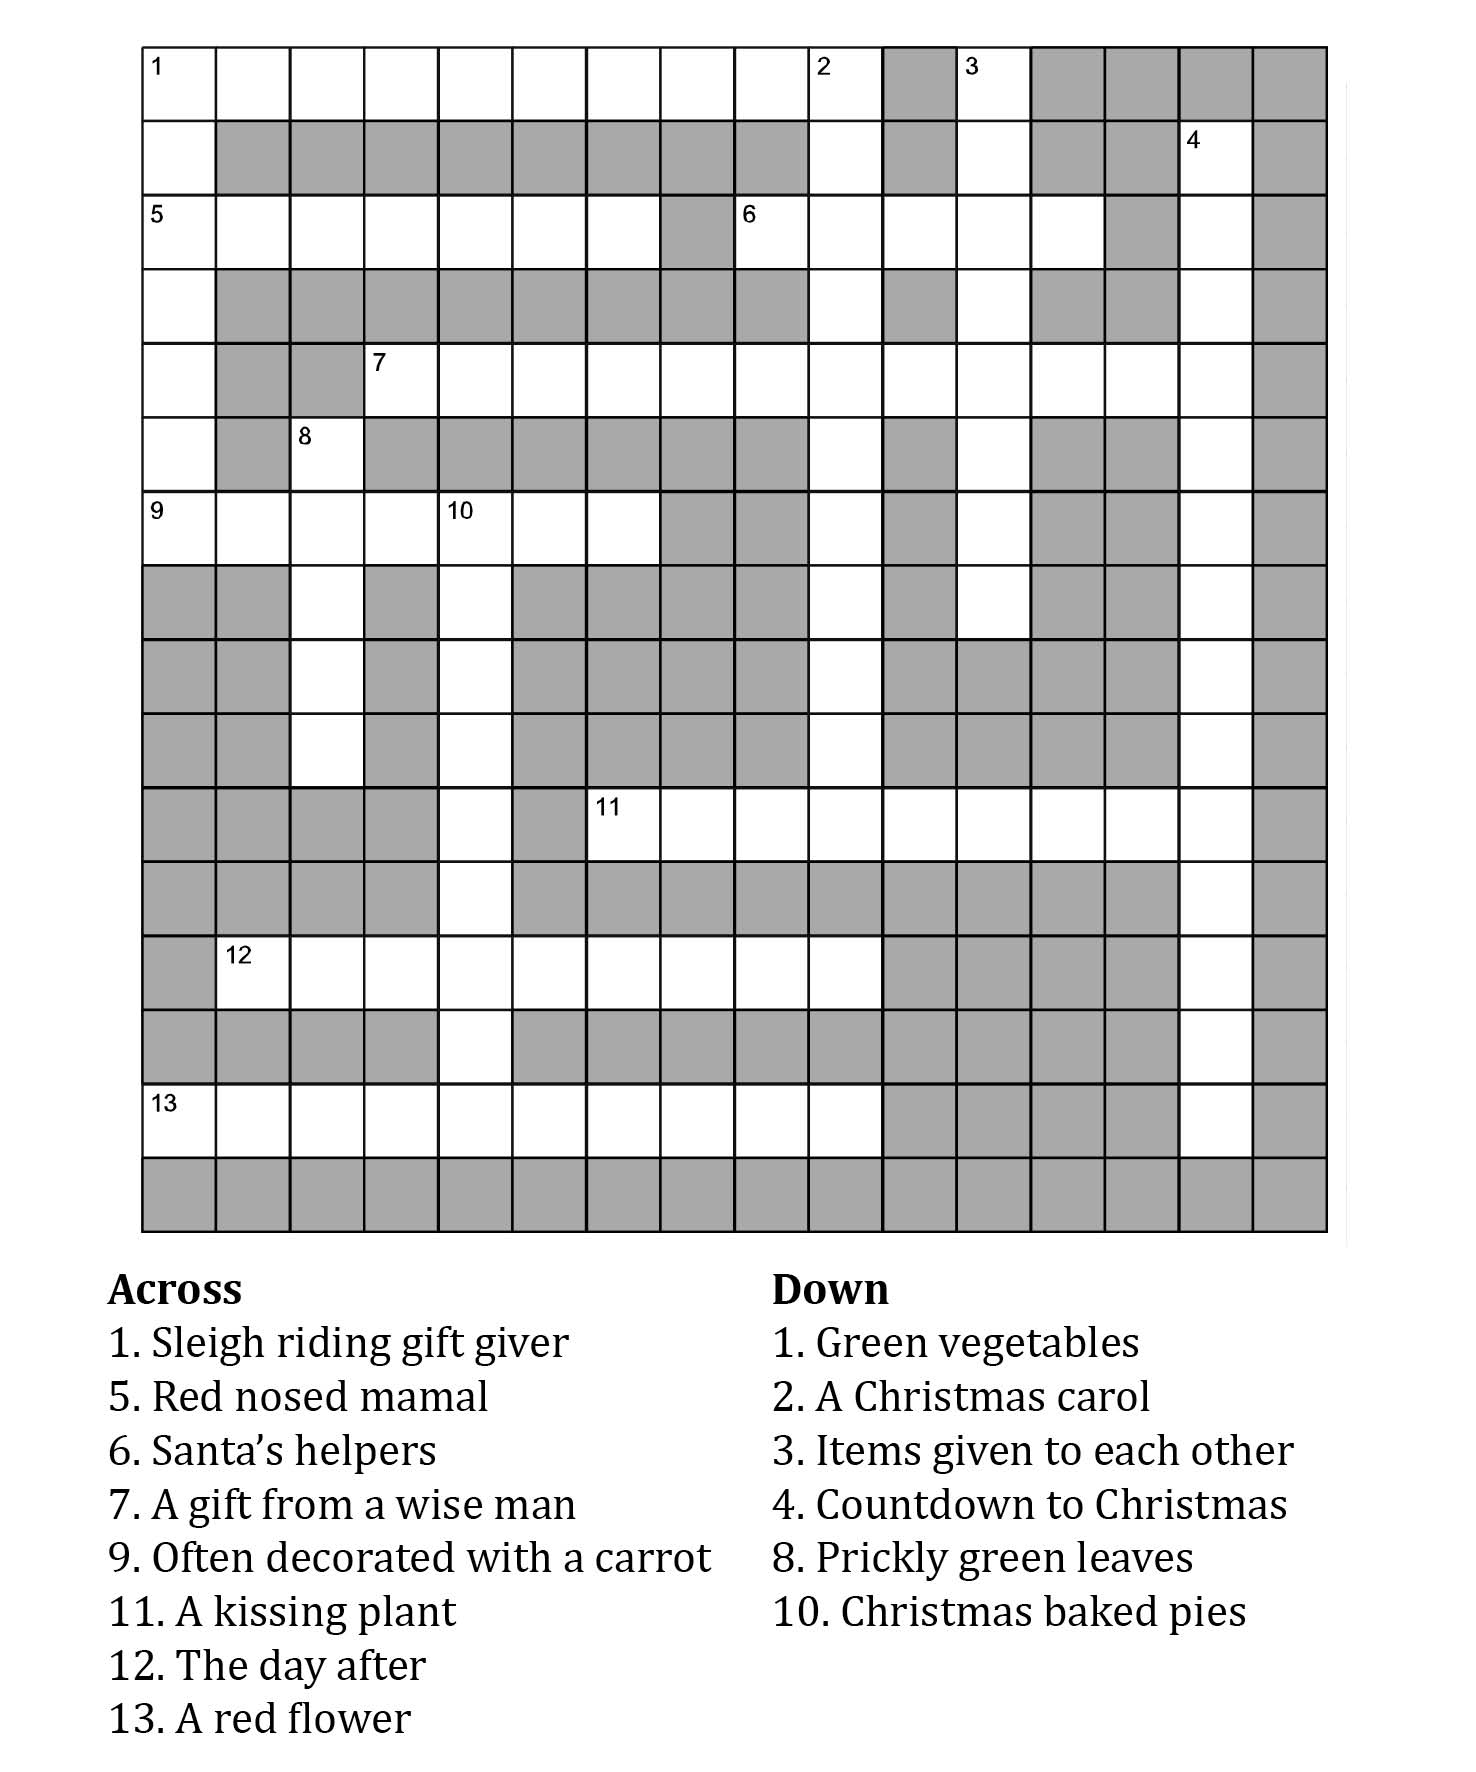 nov-16-crossword